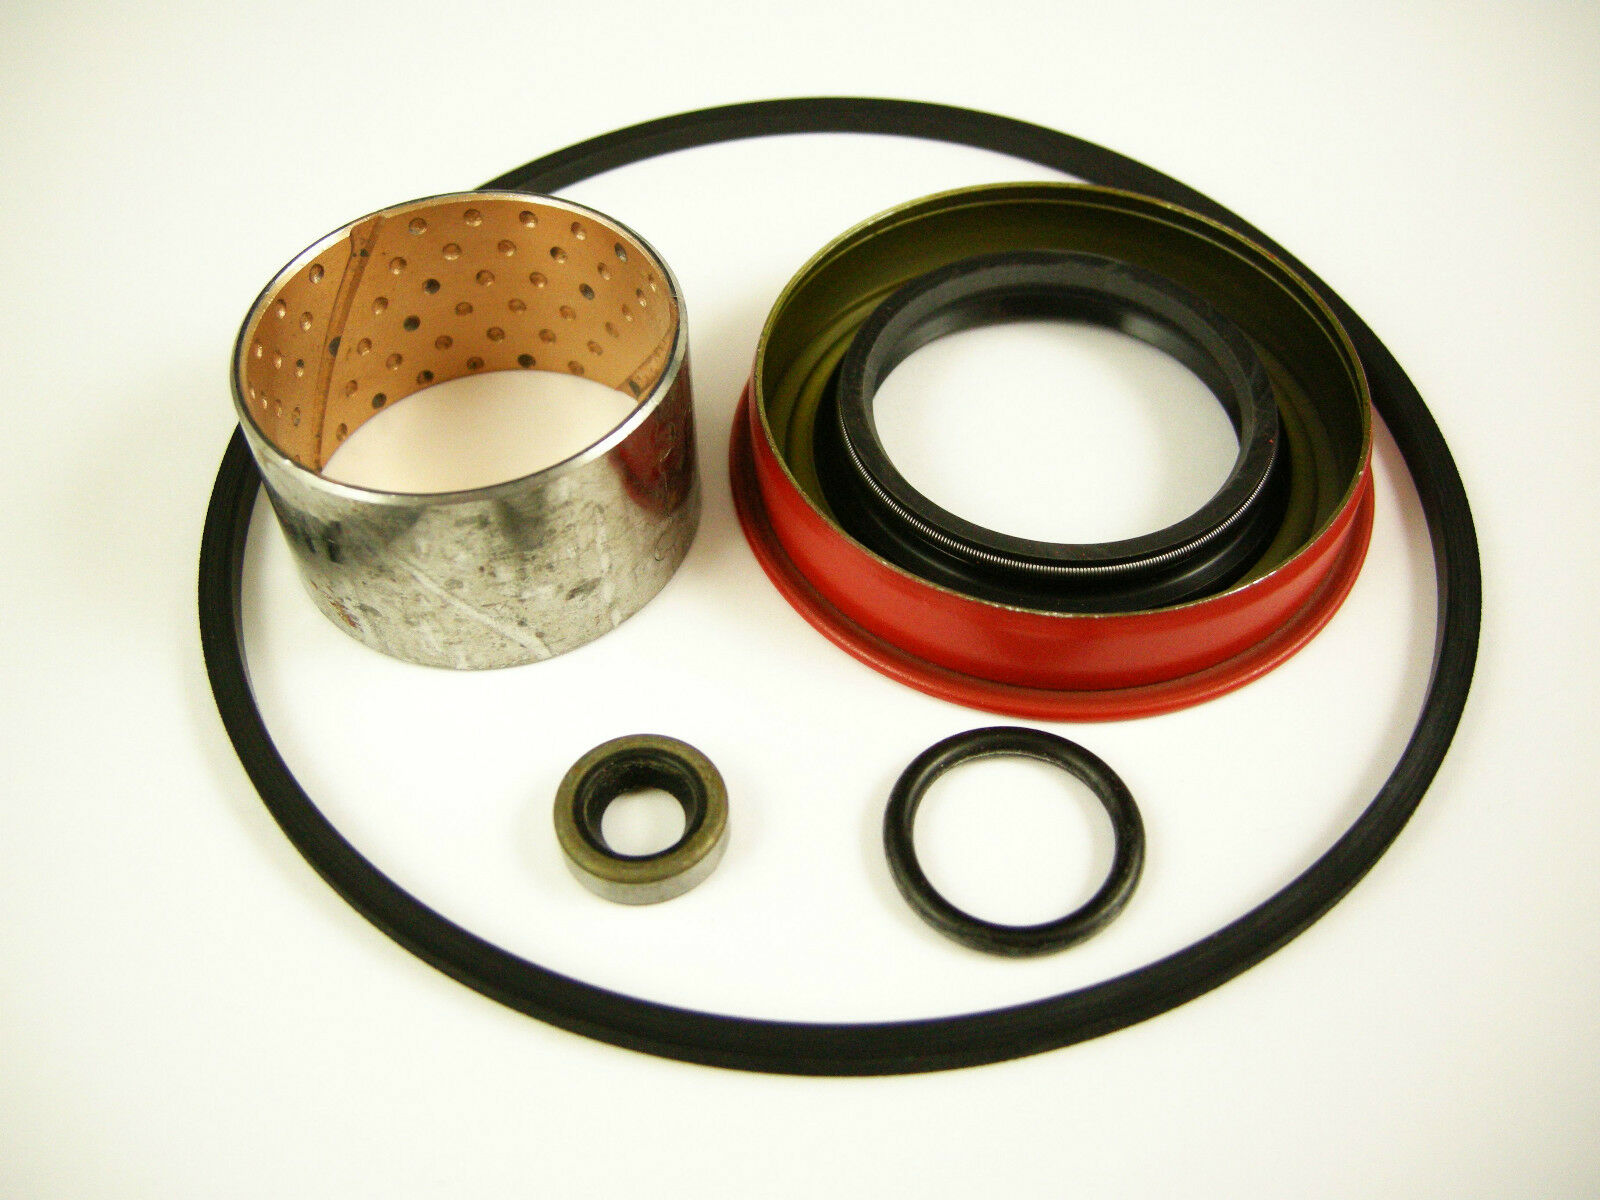 Th350 Rear Extension Tail Housing Leak Stop Seal Kit Turbo 350 Transmission